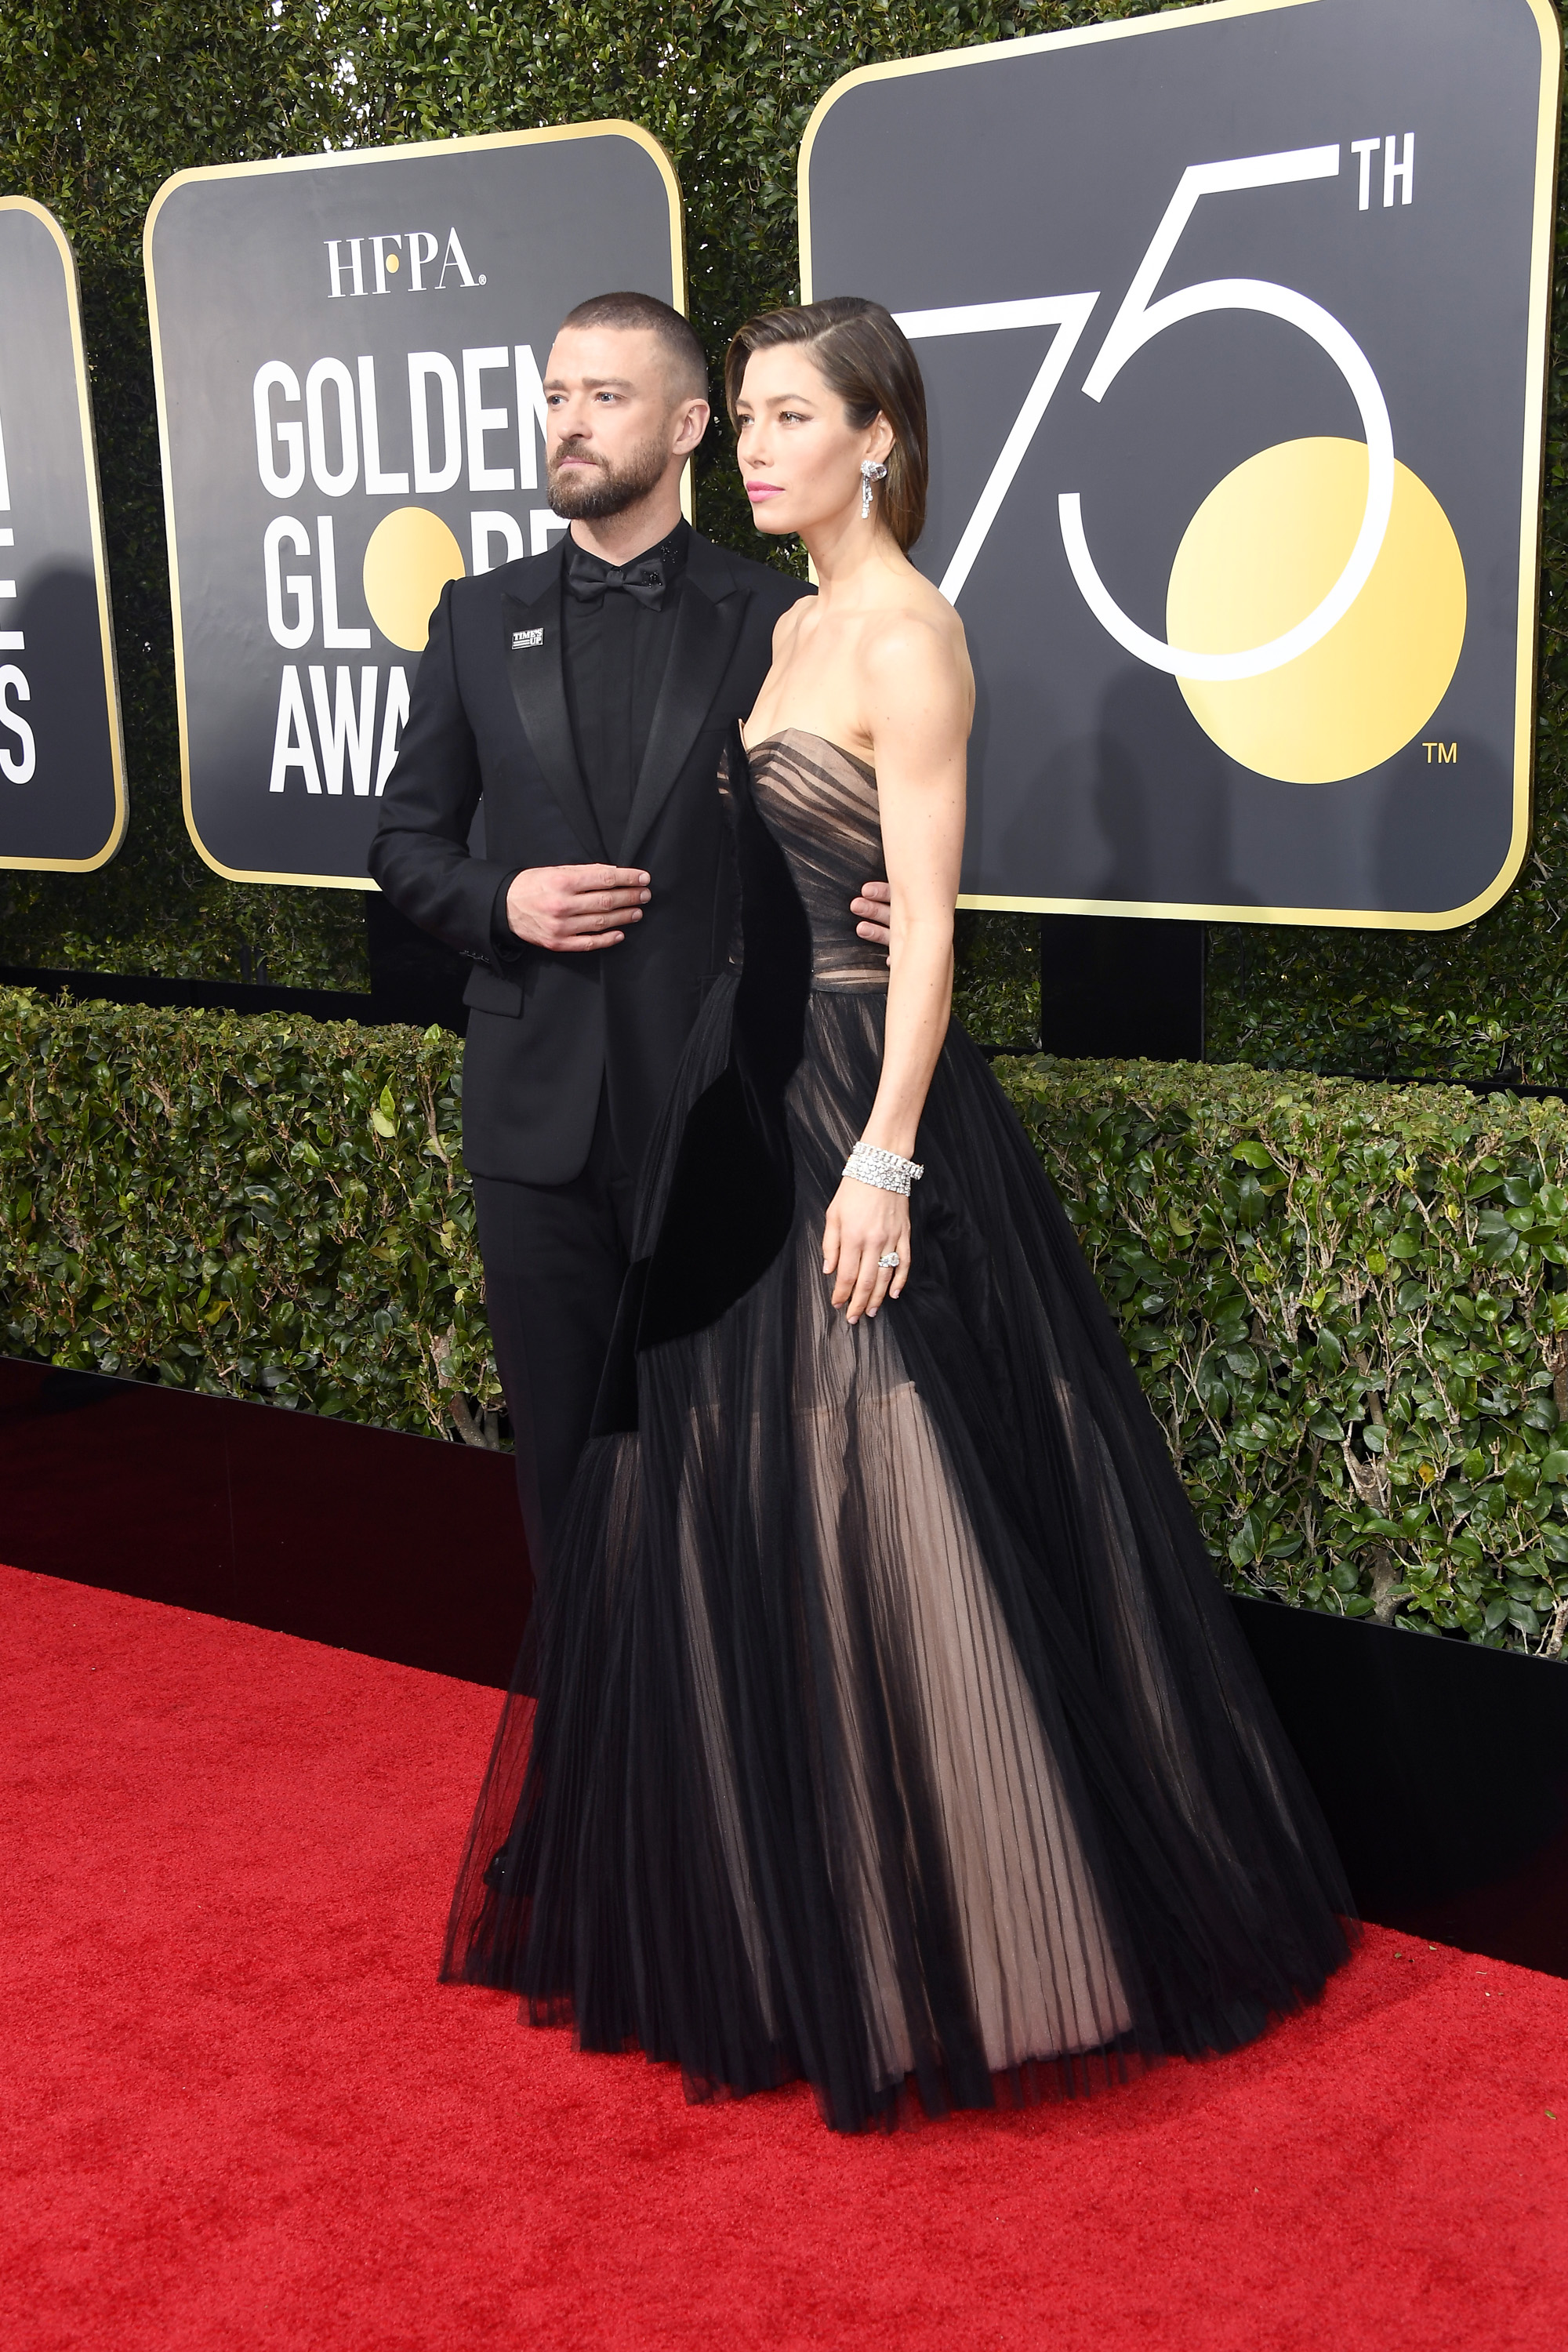 Justin Timberlake and Jessica Biel attend The 75th Annual Golden Globe Awards at The Beverly Hilton Hotel on January 7, 2018 in Beverly Hills, California.